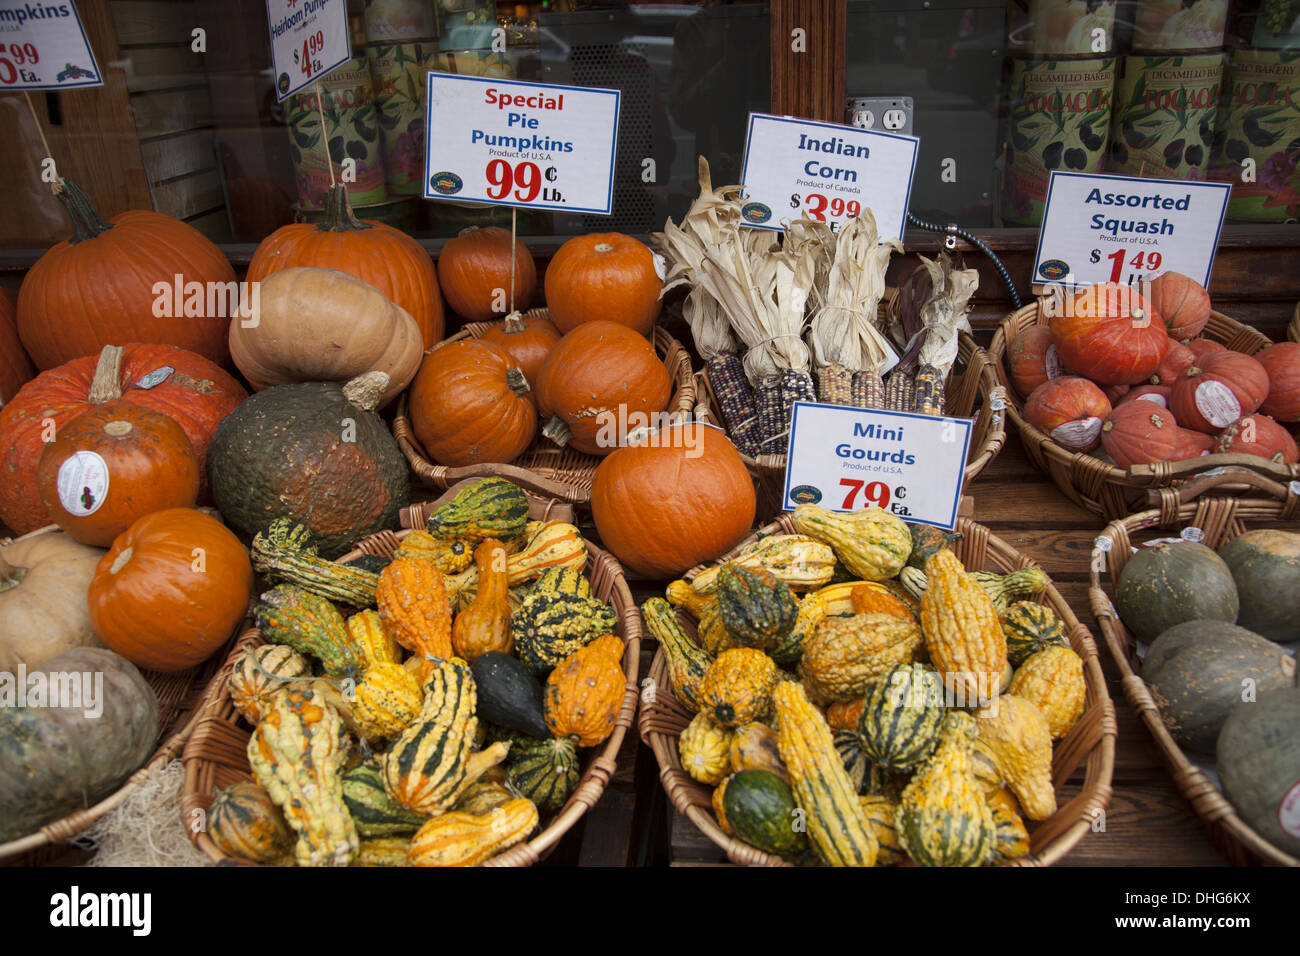 Food market display of autumn squashes, gourds and pumpkins in Manhattan, NYC. - Stock Image